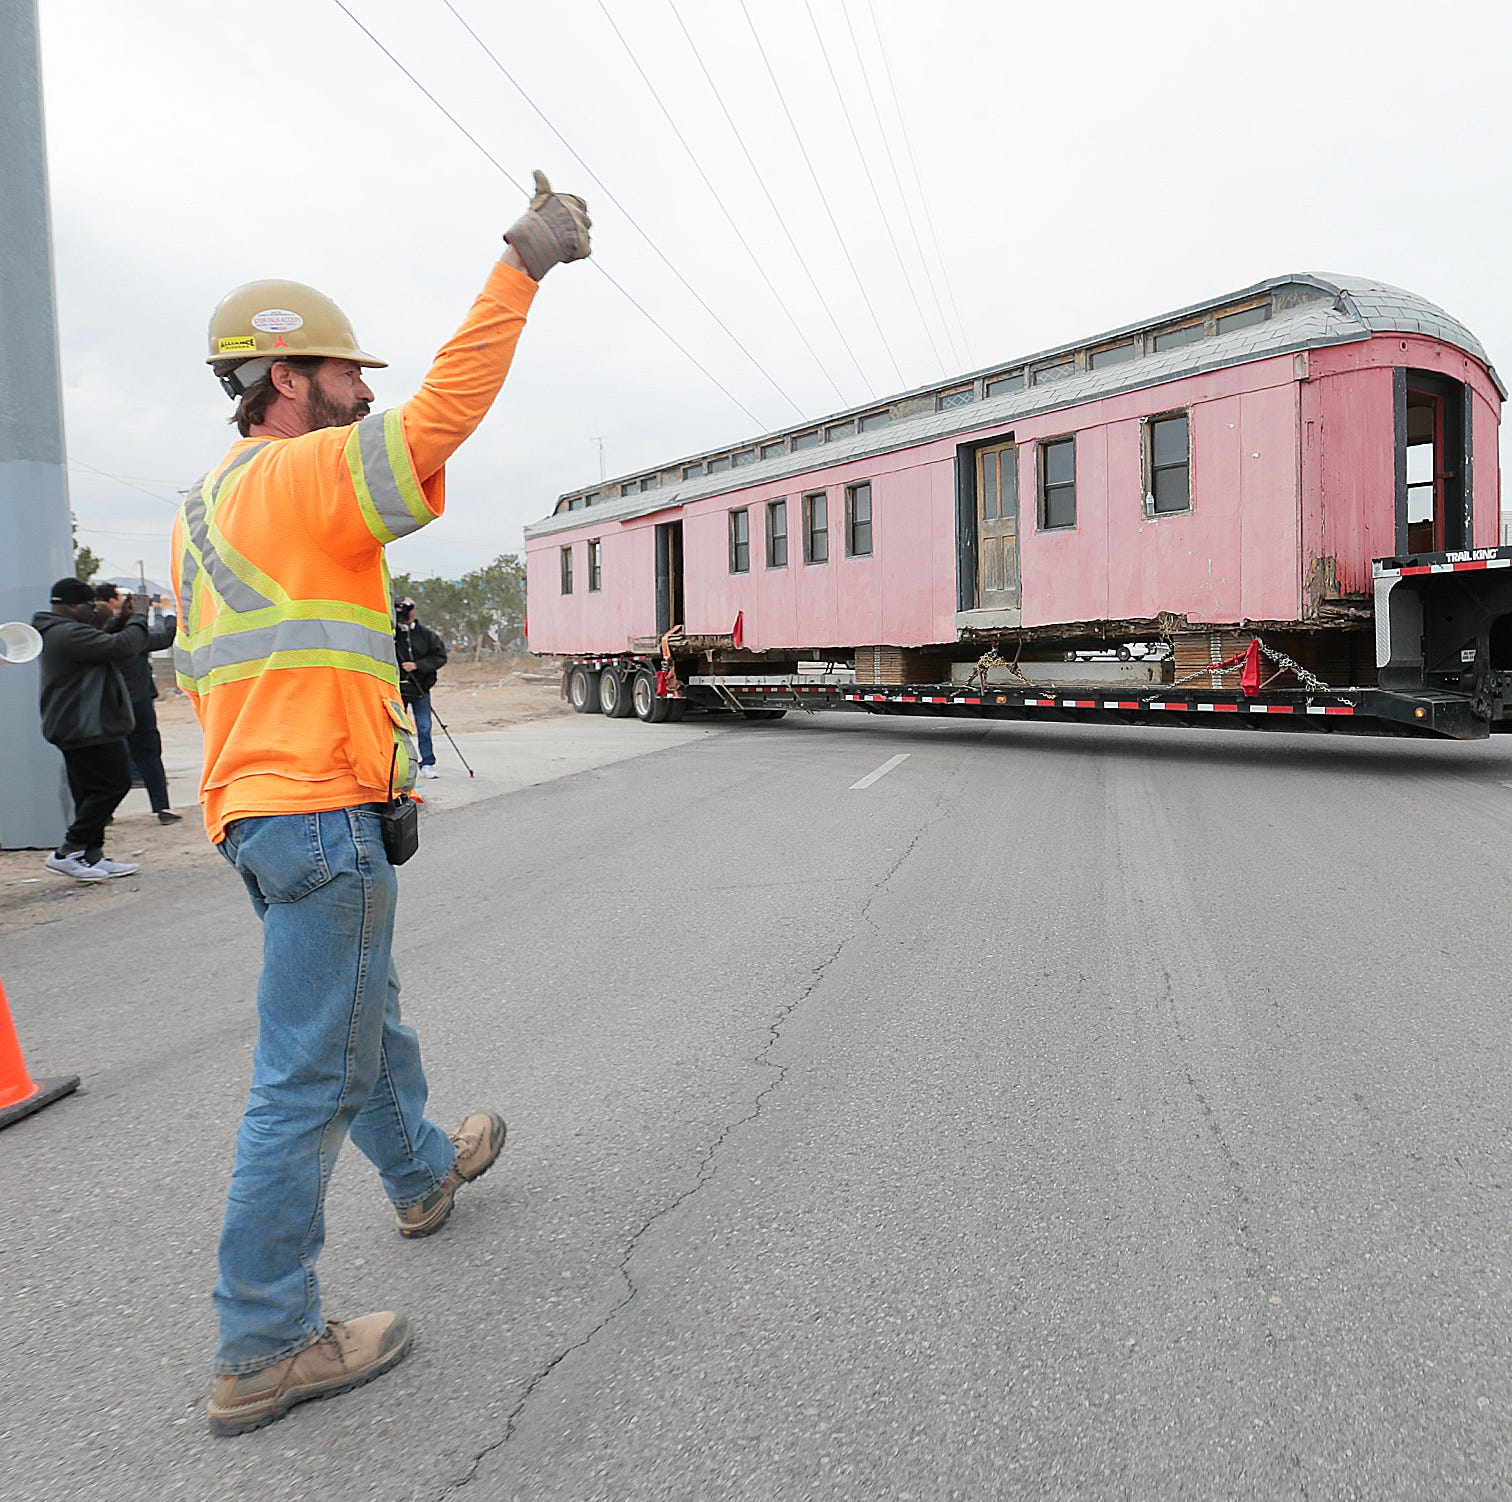 Railroad Museum rescues historic train car being used as home in Central El Paso